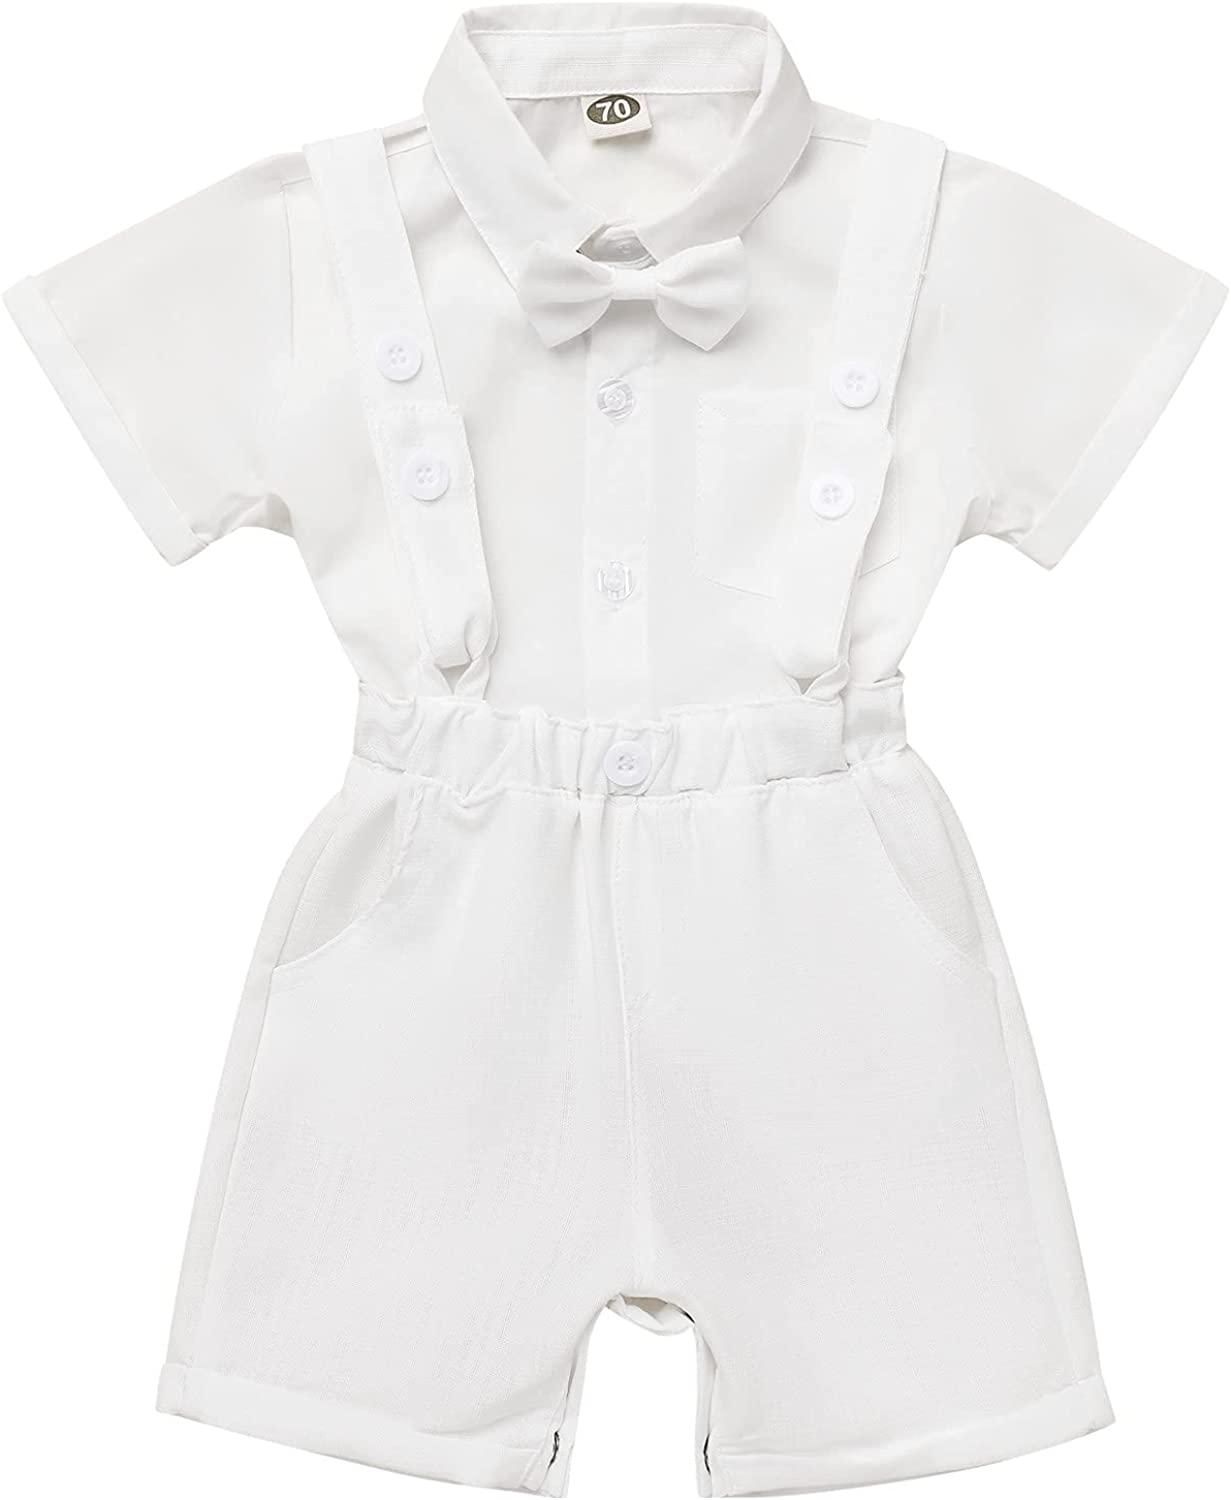 Baby Boys Baptism Christening Outfit Bowtie Romper Suspenders Pants Wedding Party Tuxedo Suit Ring Bearer Clothes Set